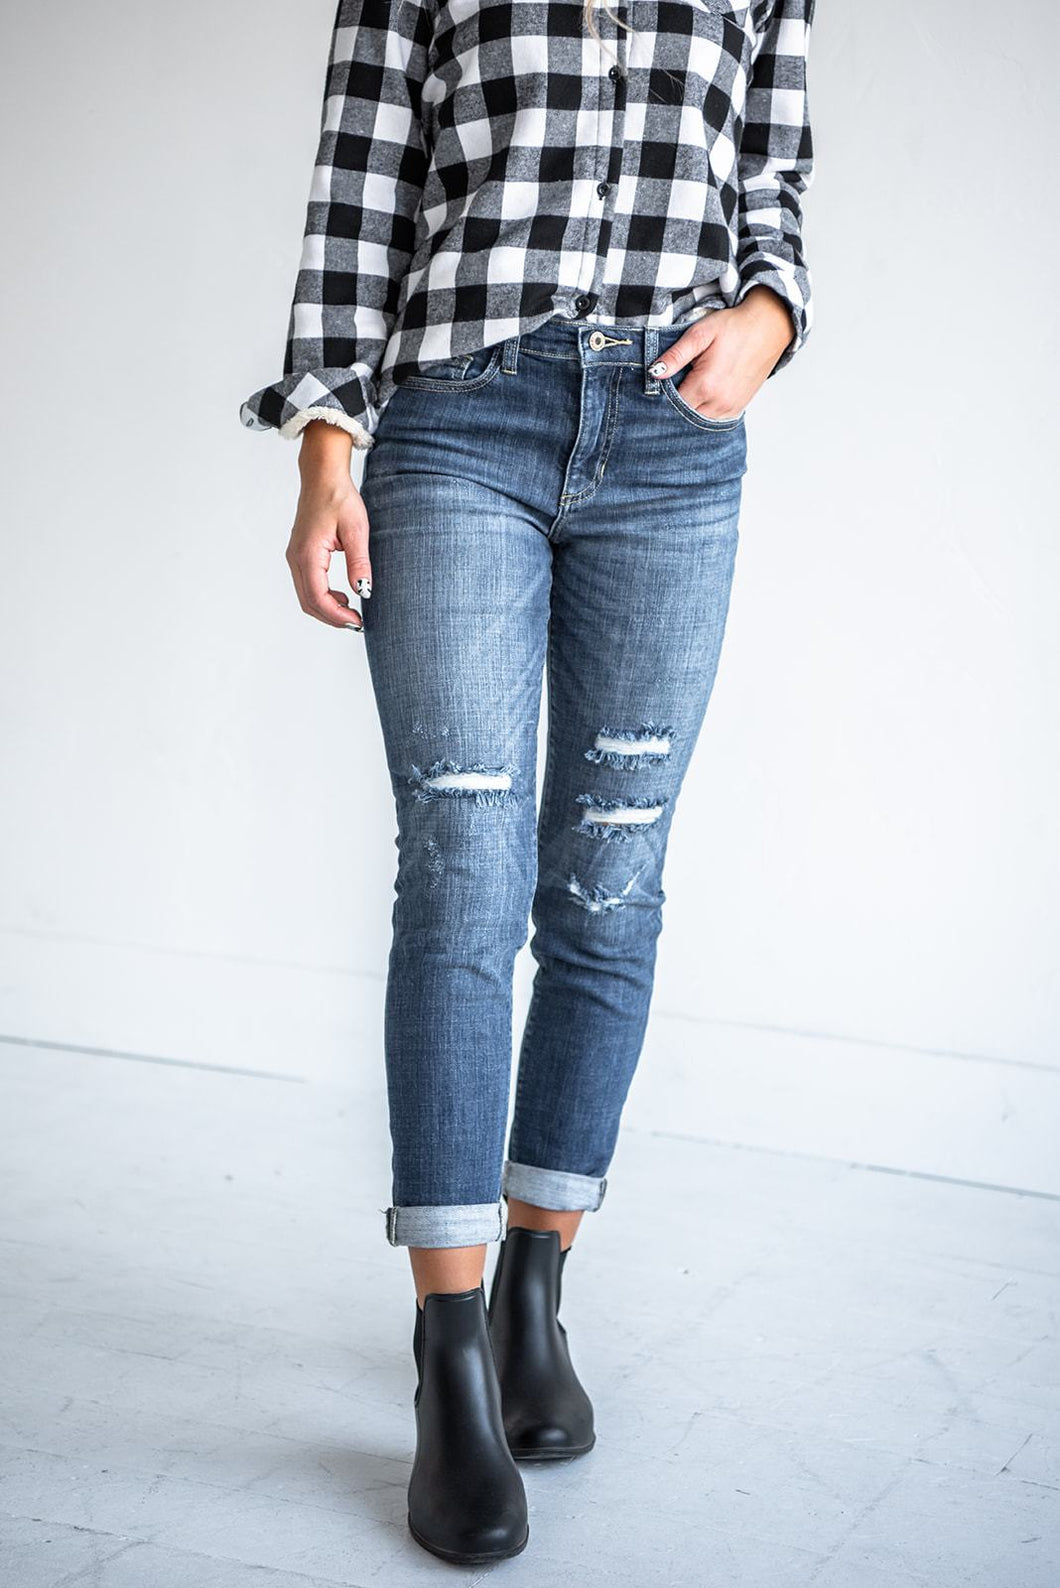 jeans-tomboy-high-rise-distressed-skinnies